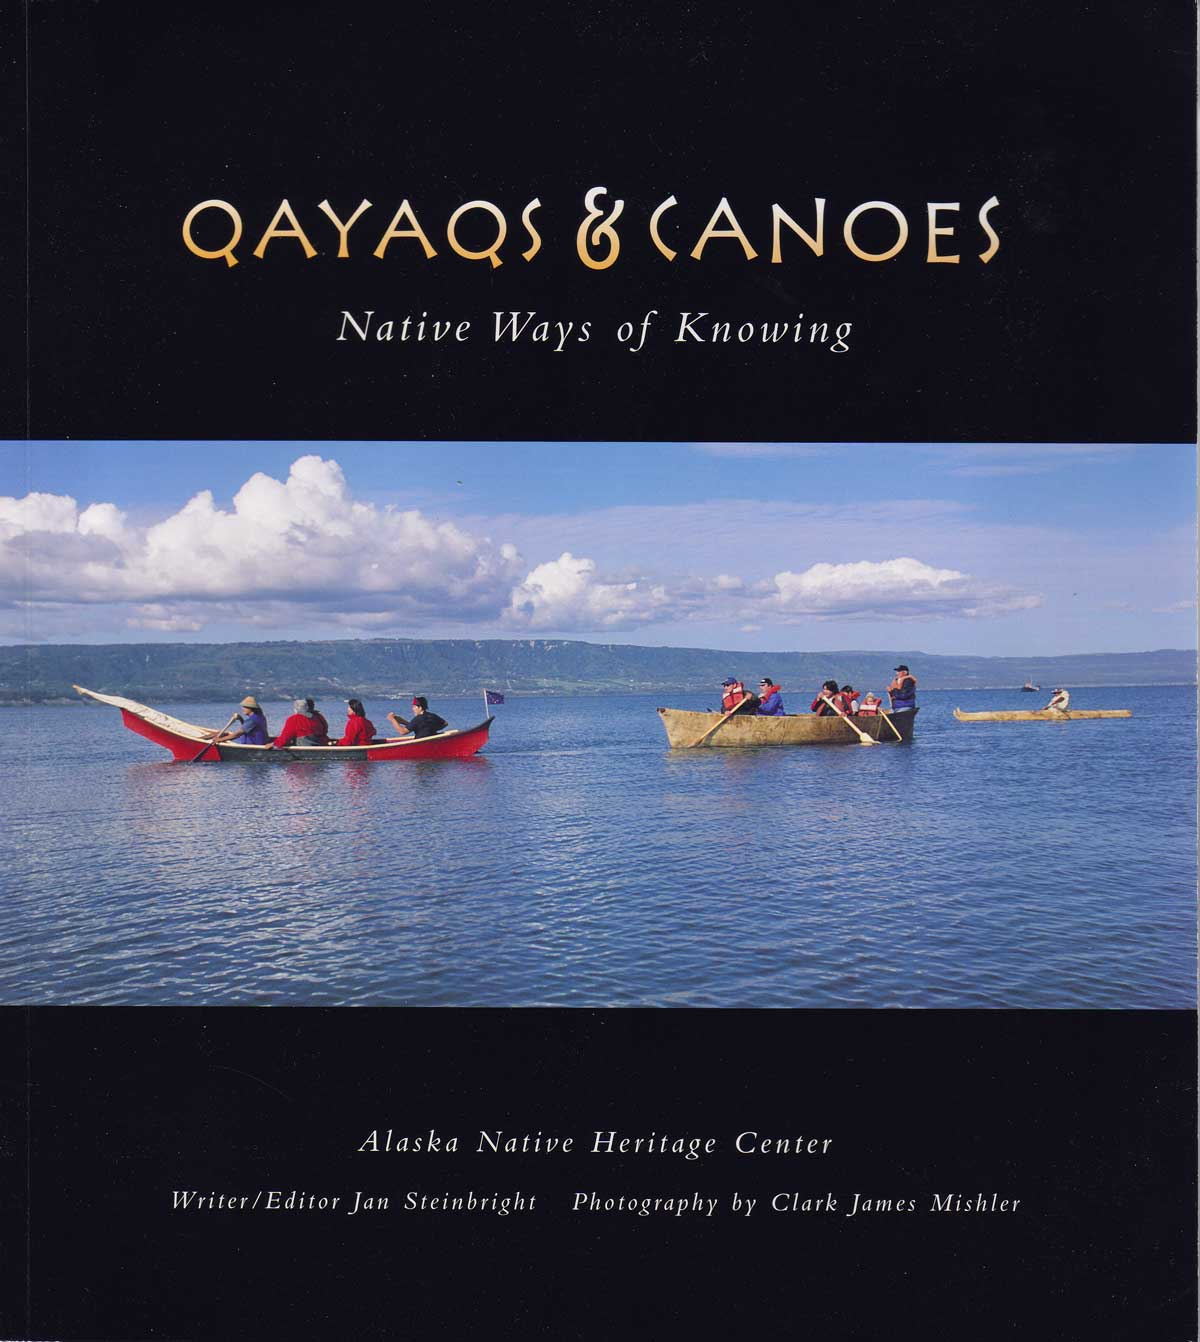 Qayaqs and Canoes